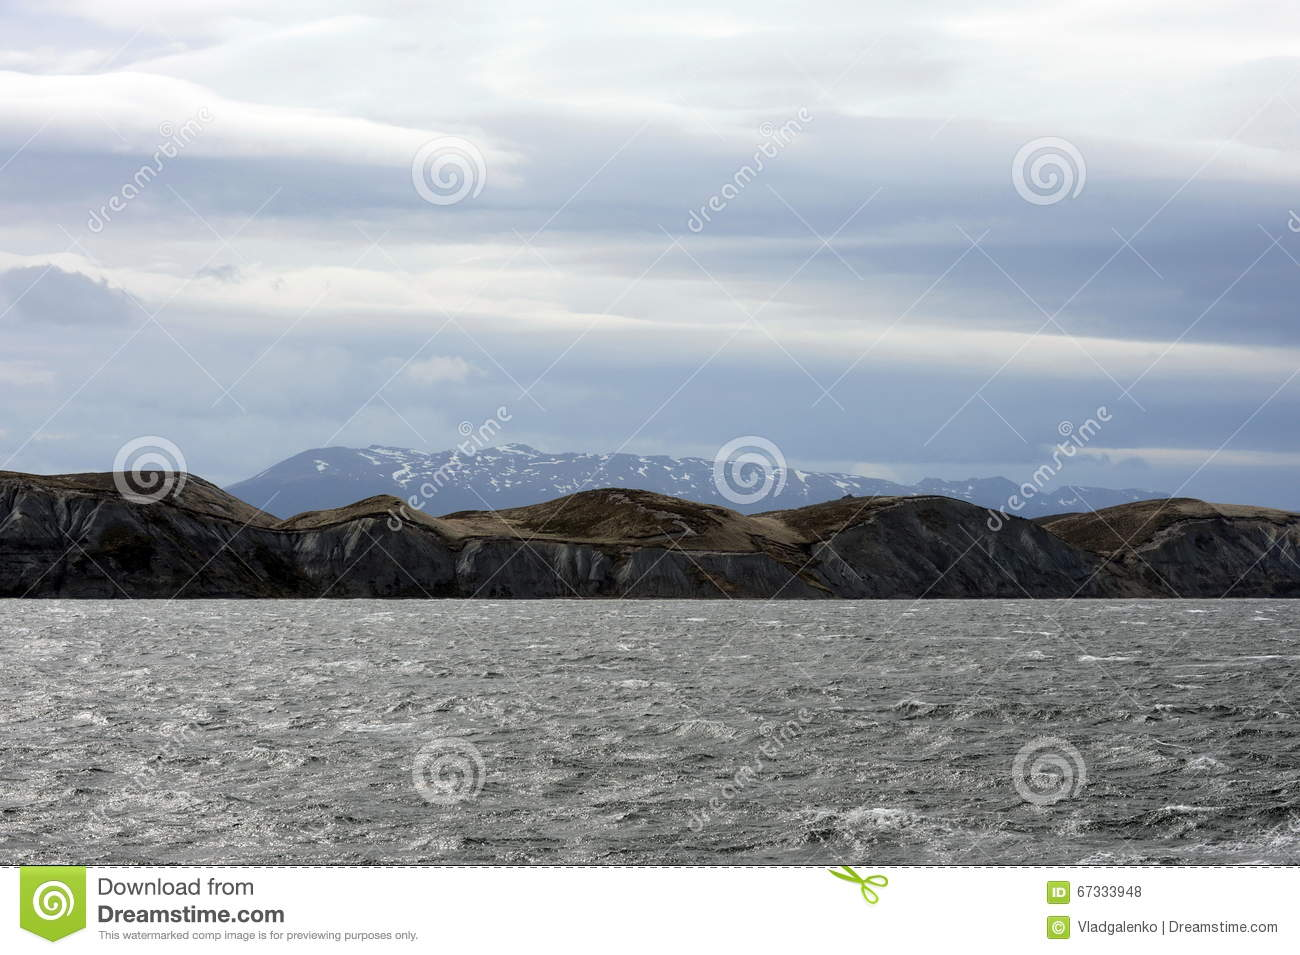 The Beagle channel separating the main island of the archipelago of Tierra del Fuego and lying to the South of the island.